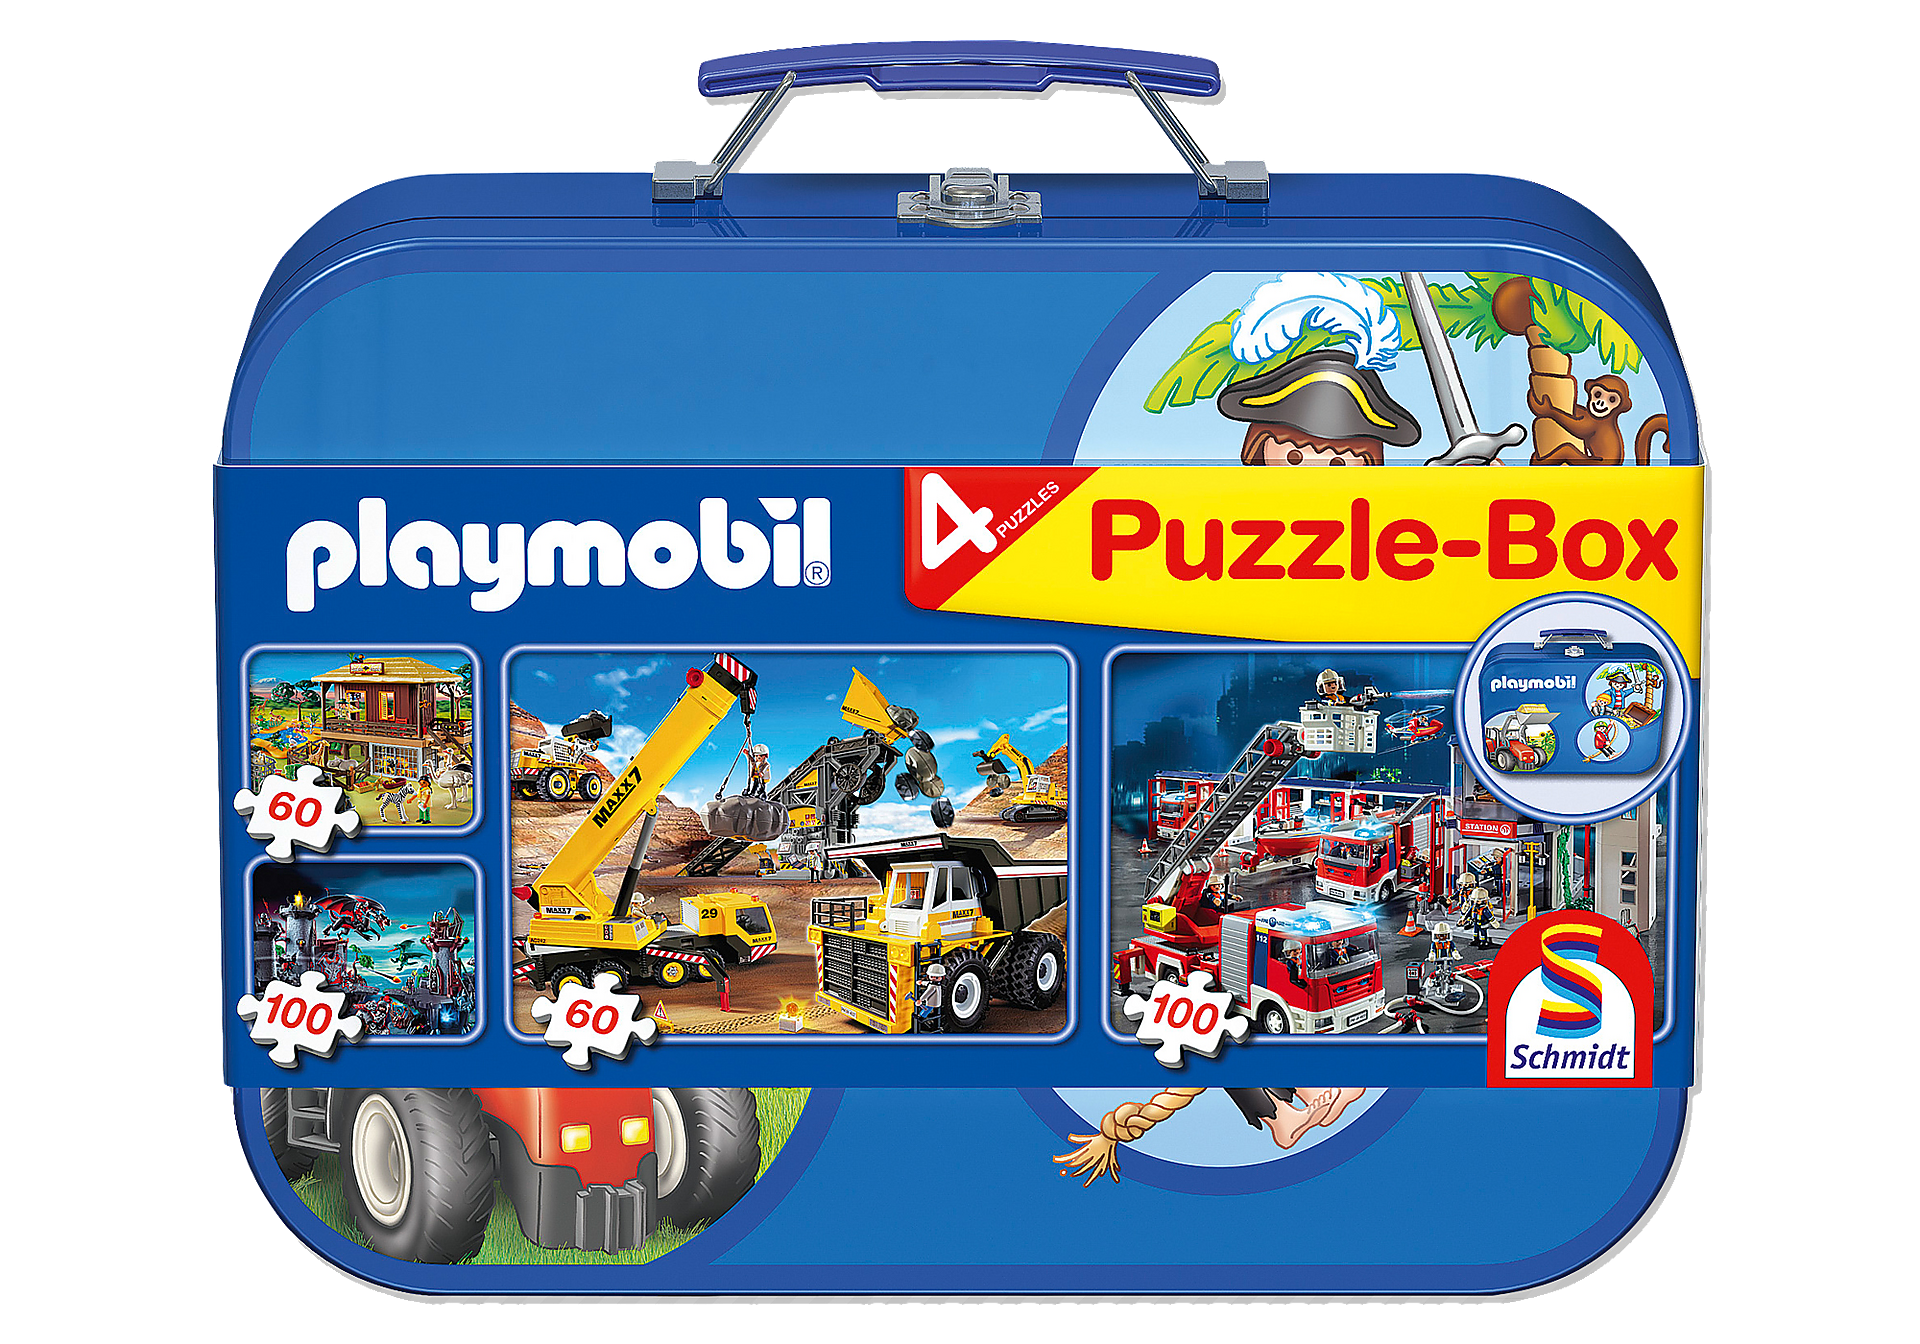 http://media.playmobil.com/i/playmobil/80247_product_detail/Puzzle-Box